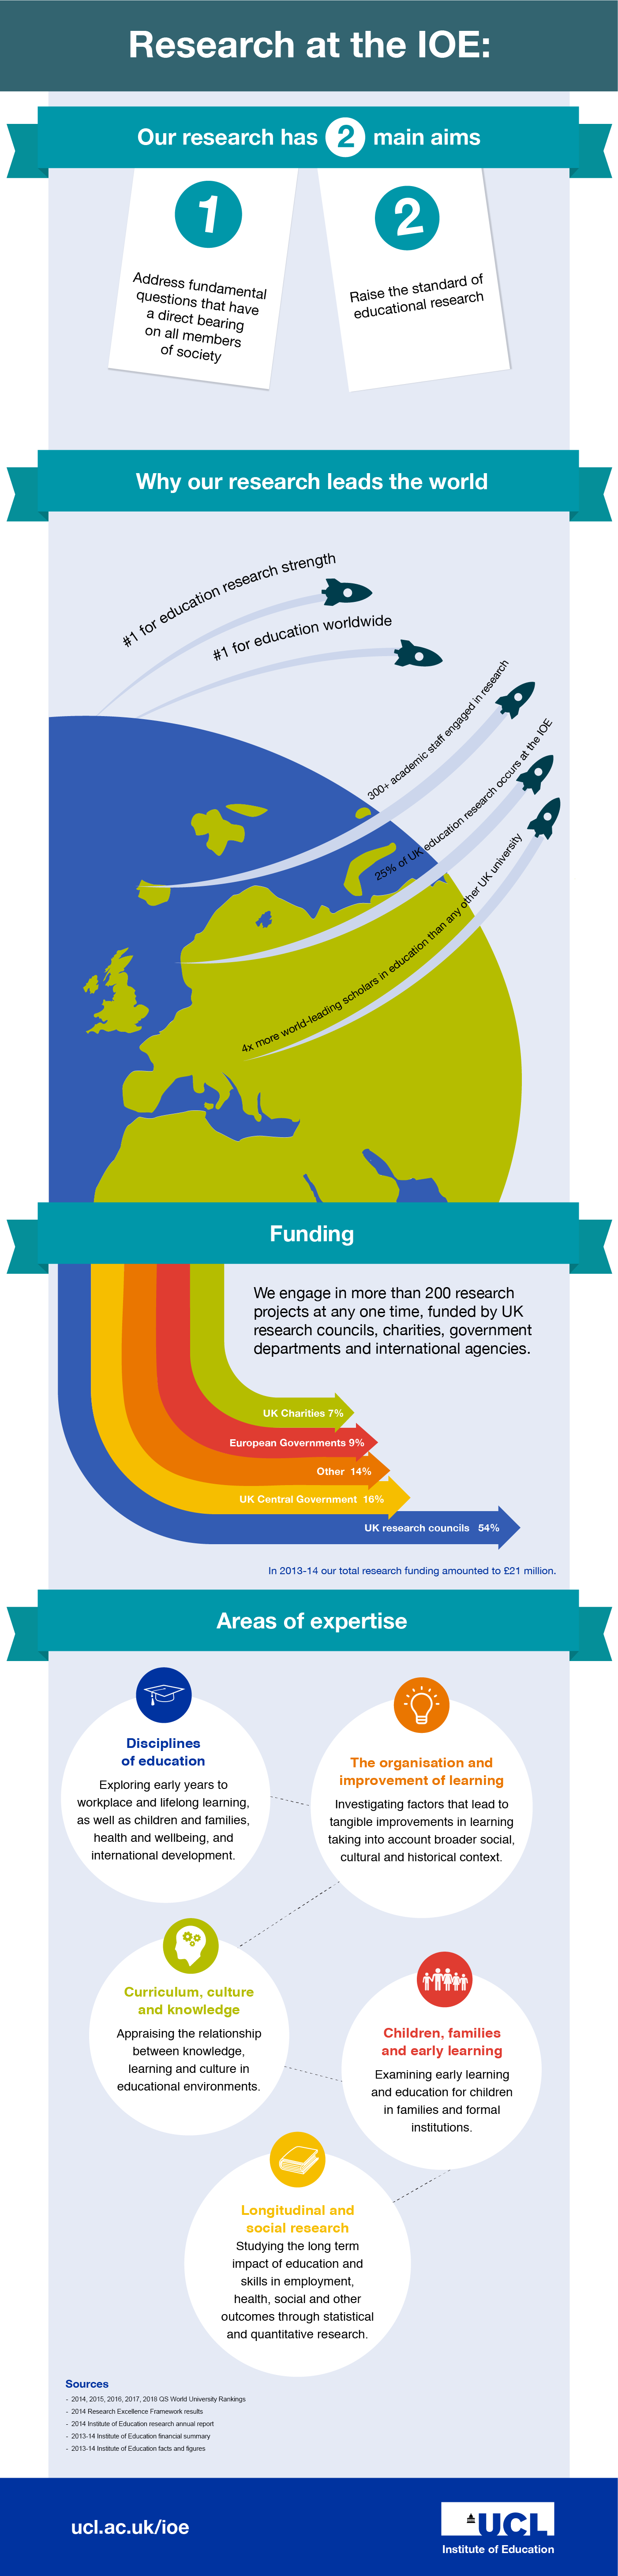 Research at the UCL Institute of Education infographic